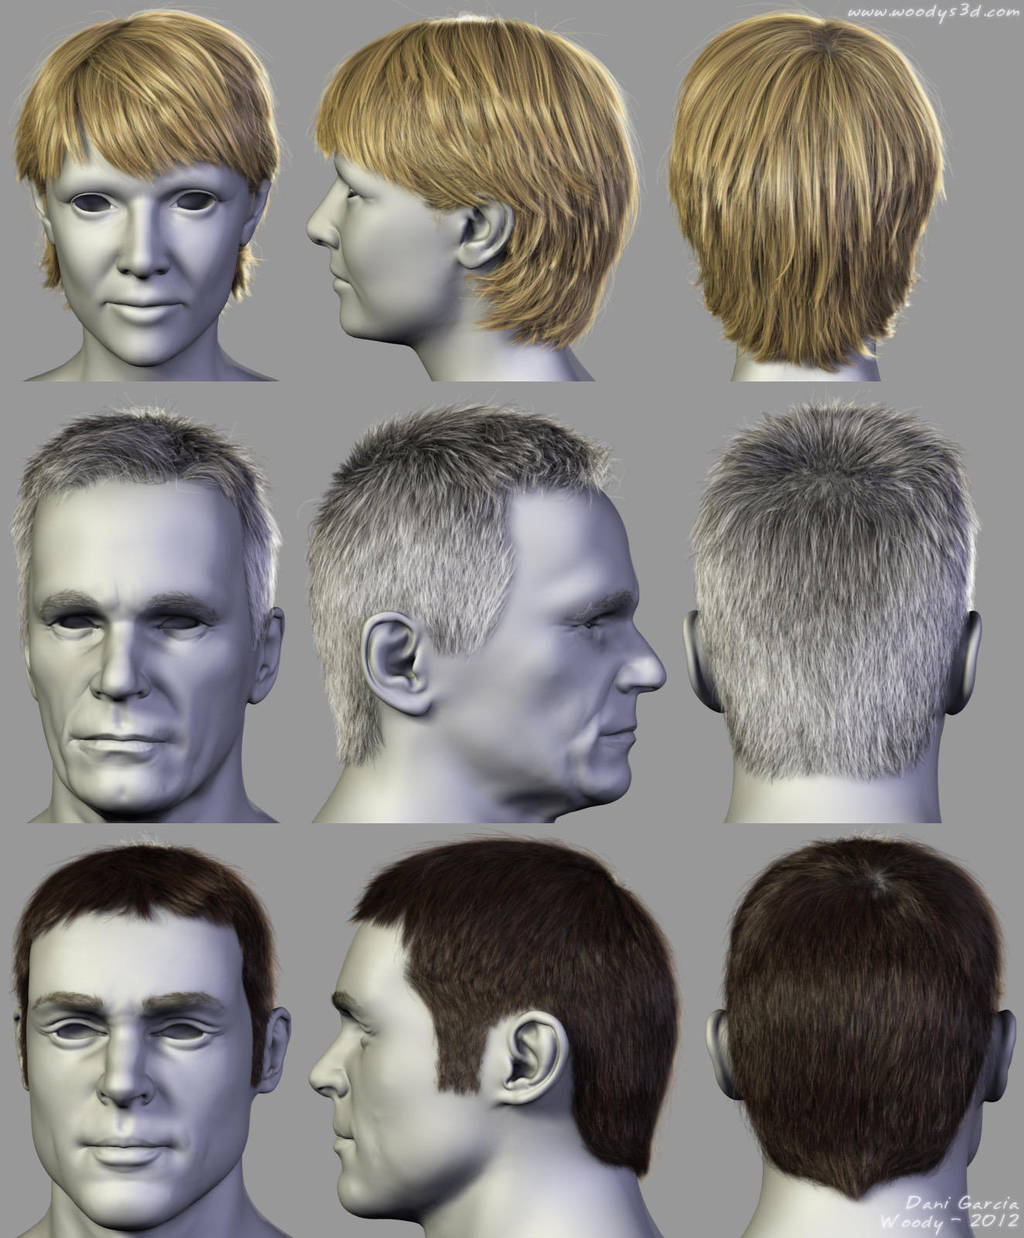 2012 Hairstyles 06 by Woodys3d